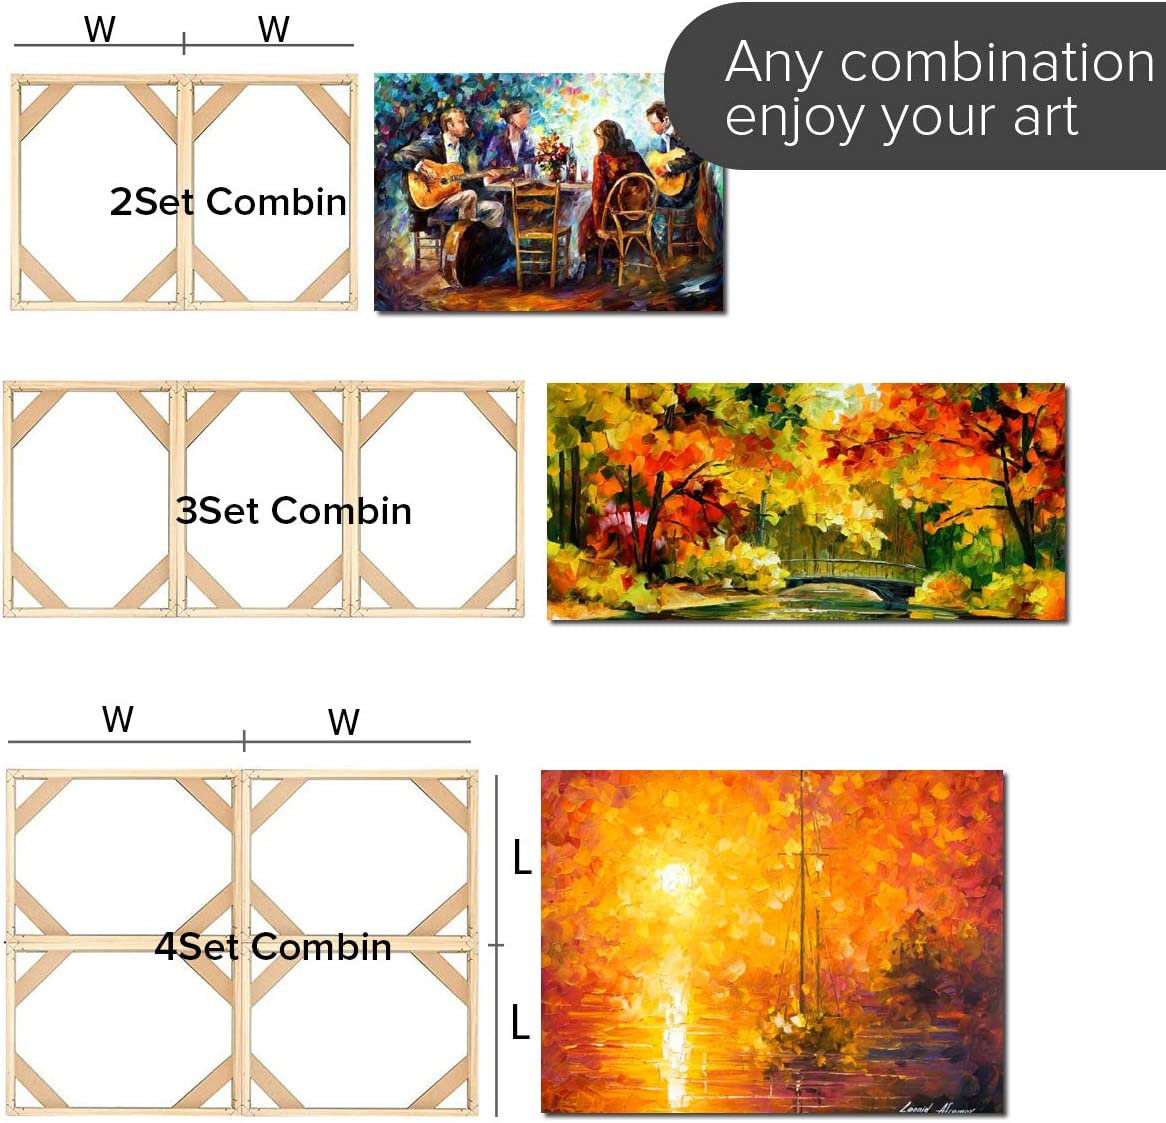 10x10 inch La Vane Customized Wooden Art Frames Picture Accessories for Oil Painting /& Home Bar Cafe Photo Poster Wall Art 25x40cm DIY Solid Wood Canvas Frame Kit